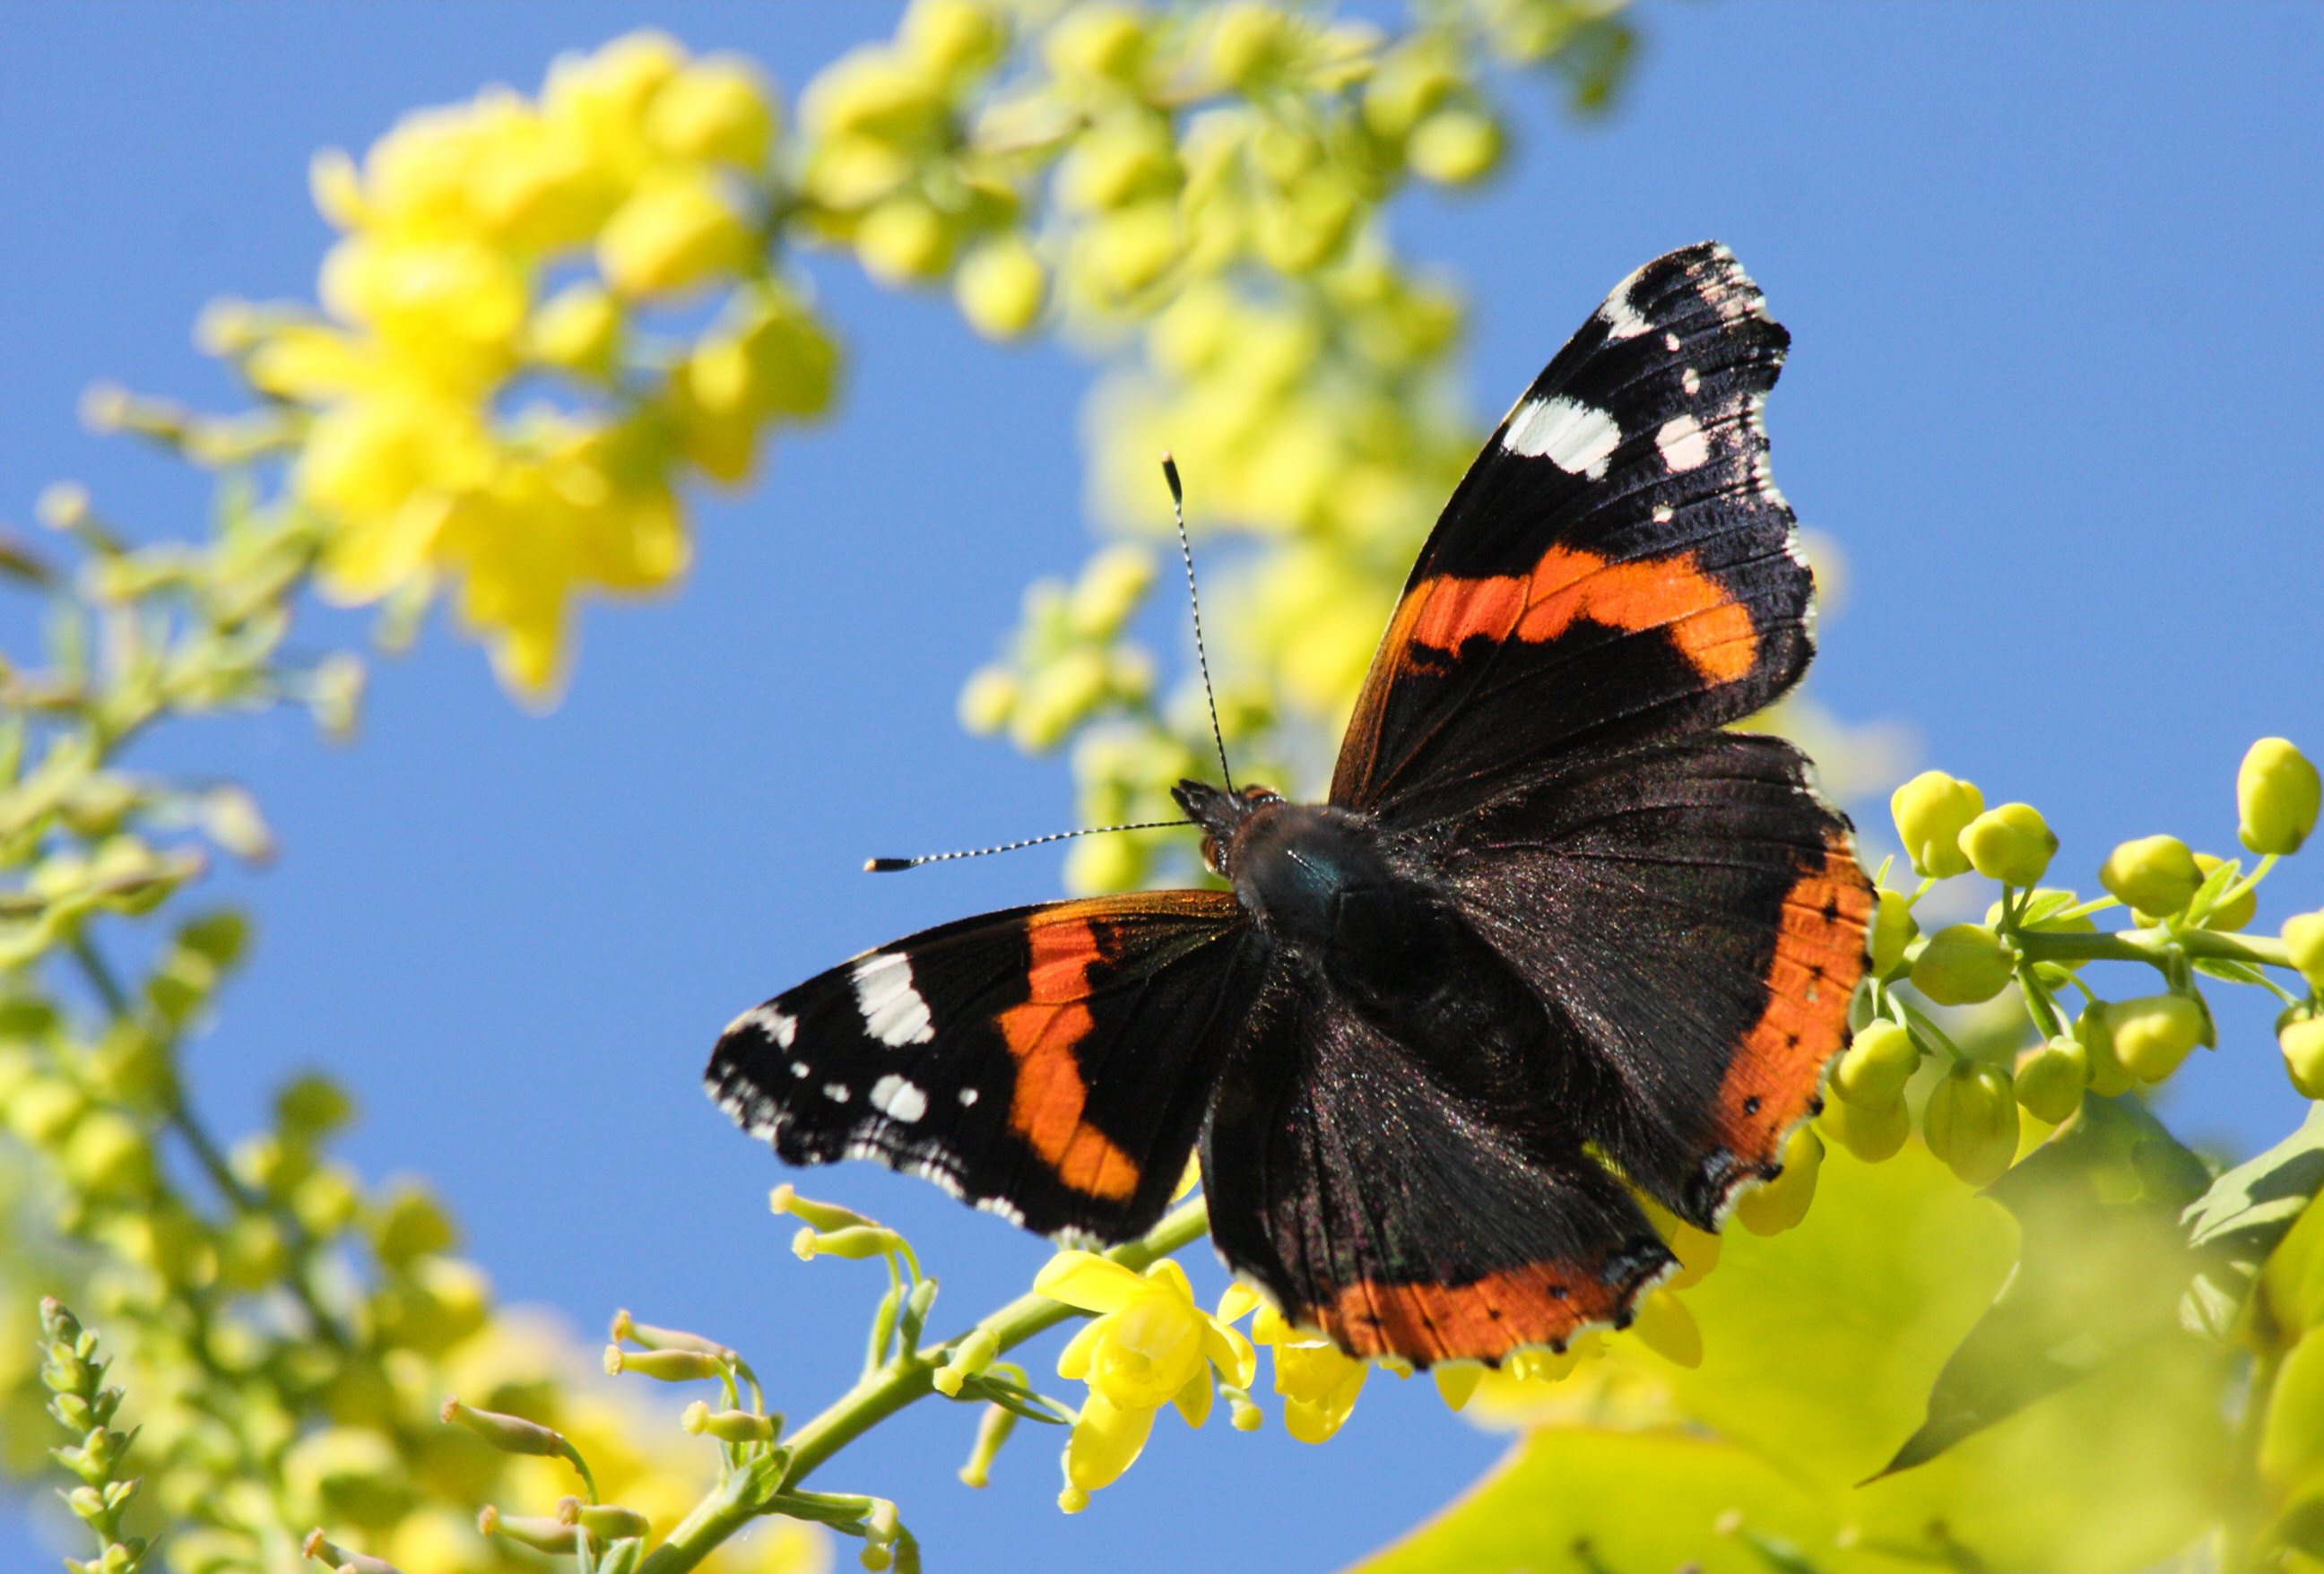 Red Admiral butterfly, Vanessa atalanta, on Mahonia